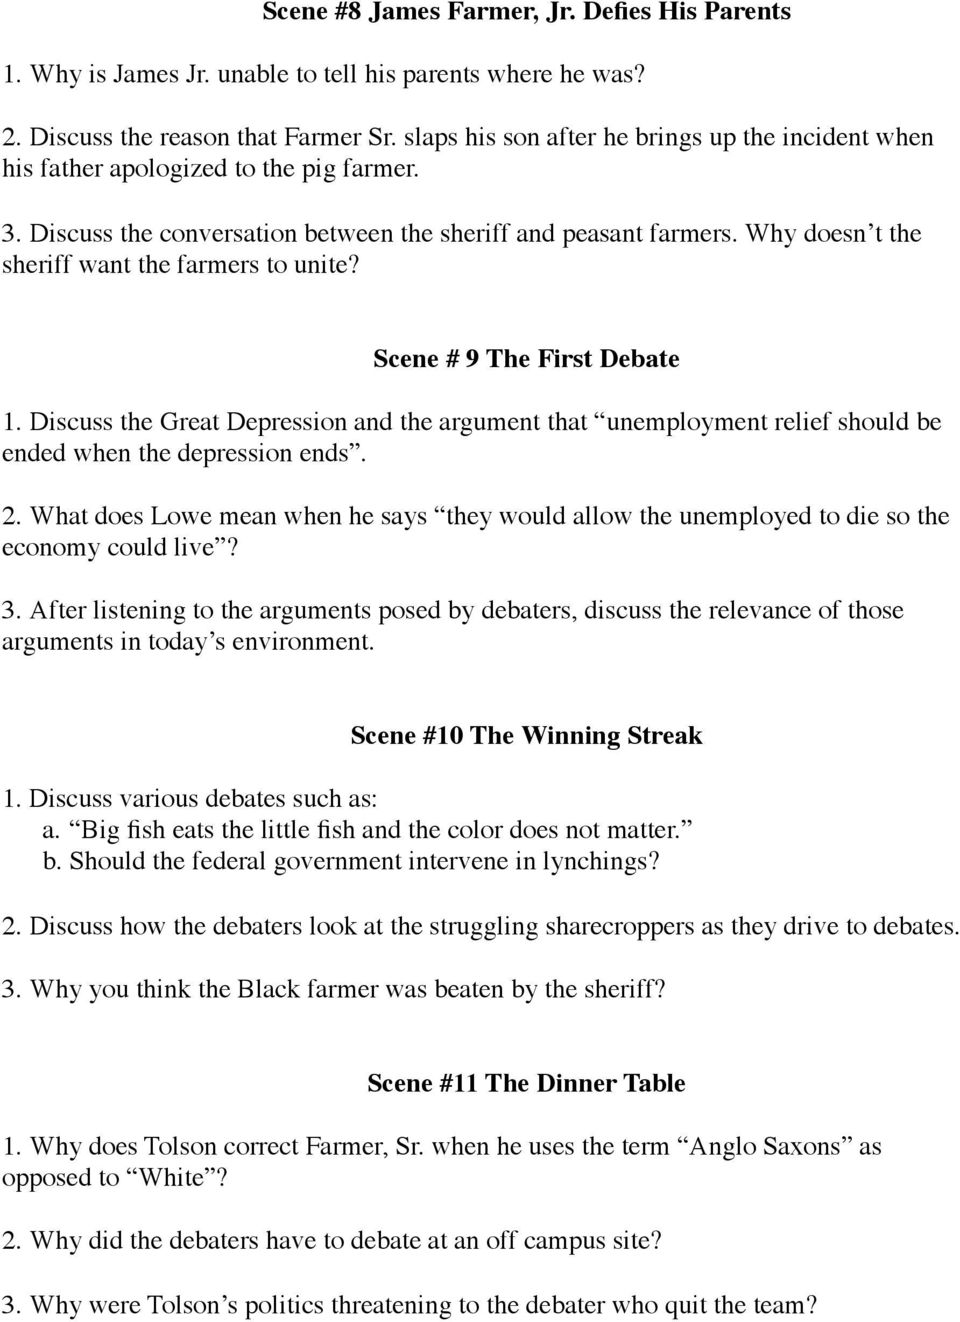 The Great Debaters Question Guide - PDF